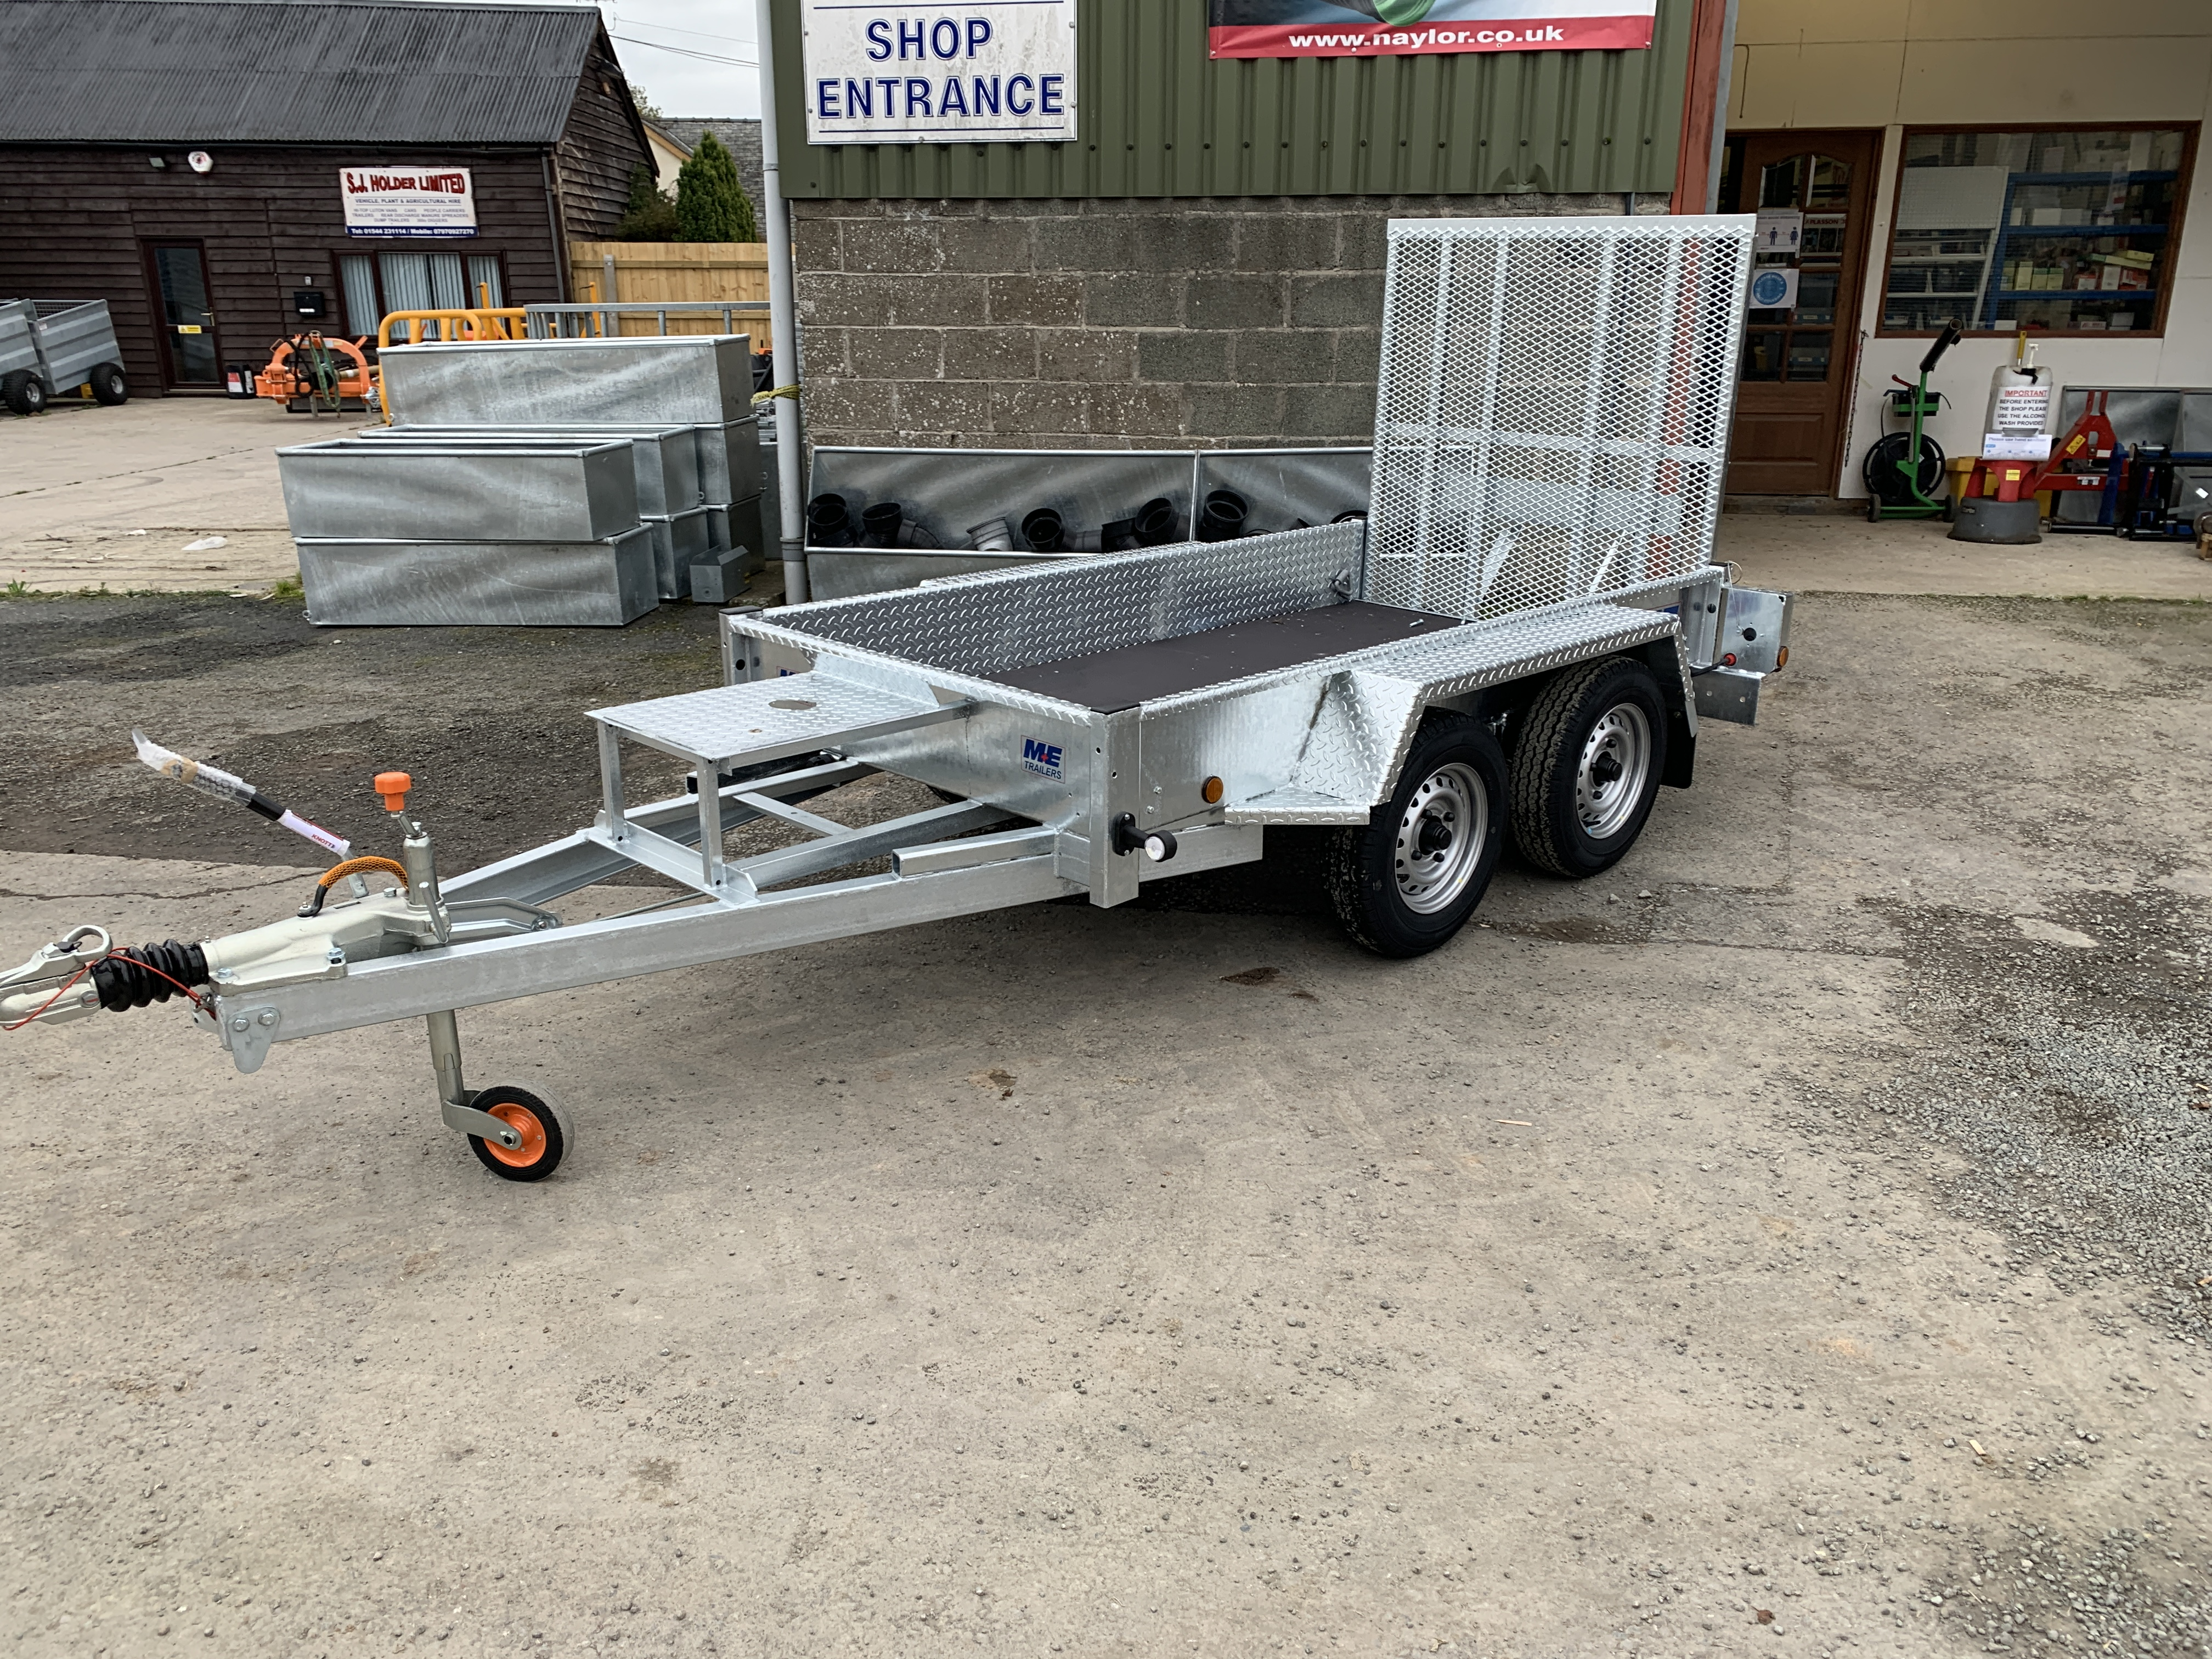 Meredith and Eyre plant and digger trailer with drop down ramp, led lights